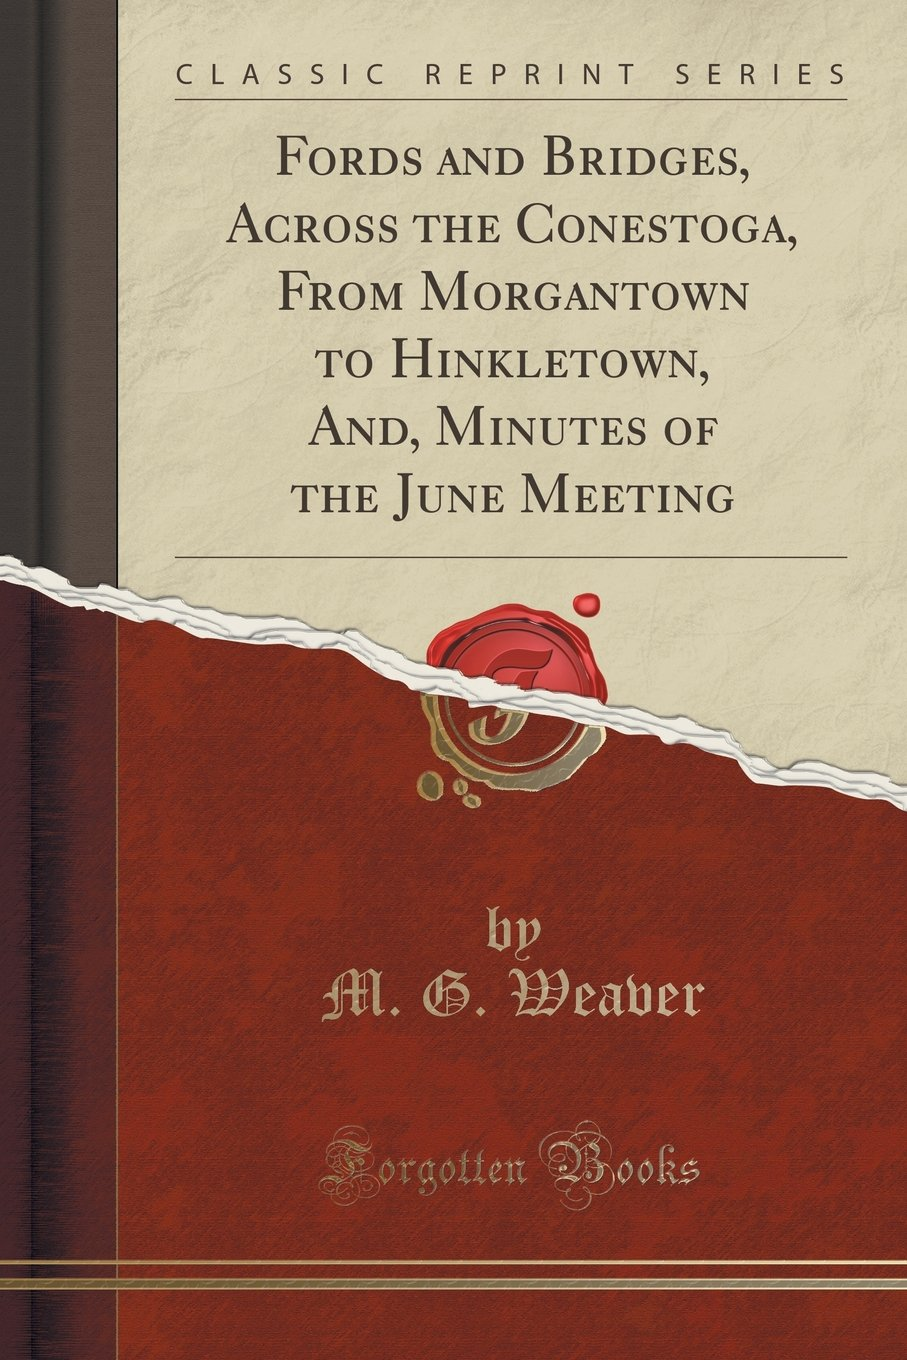 Fords and Bridges, Across the Conestoga, From Morgantown to Hinkletown, And, Minutes of the June Meeting (Classic Reprint) ebook